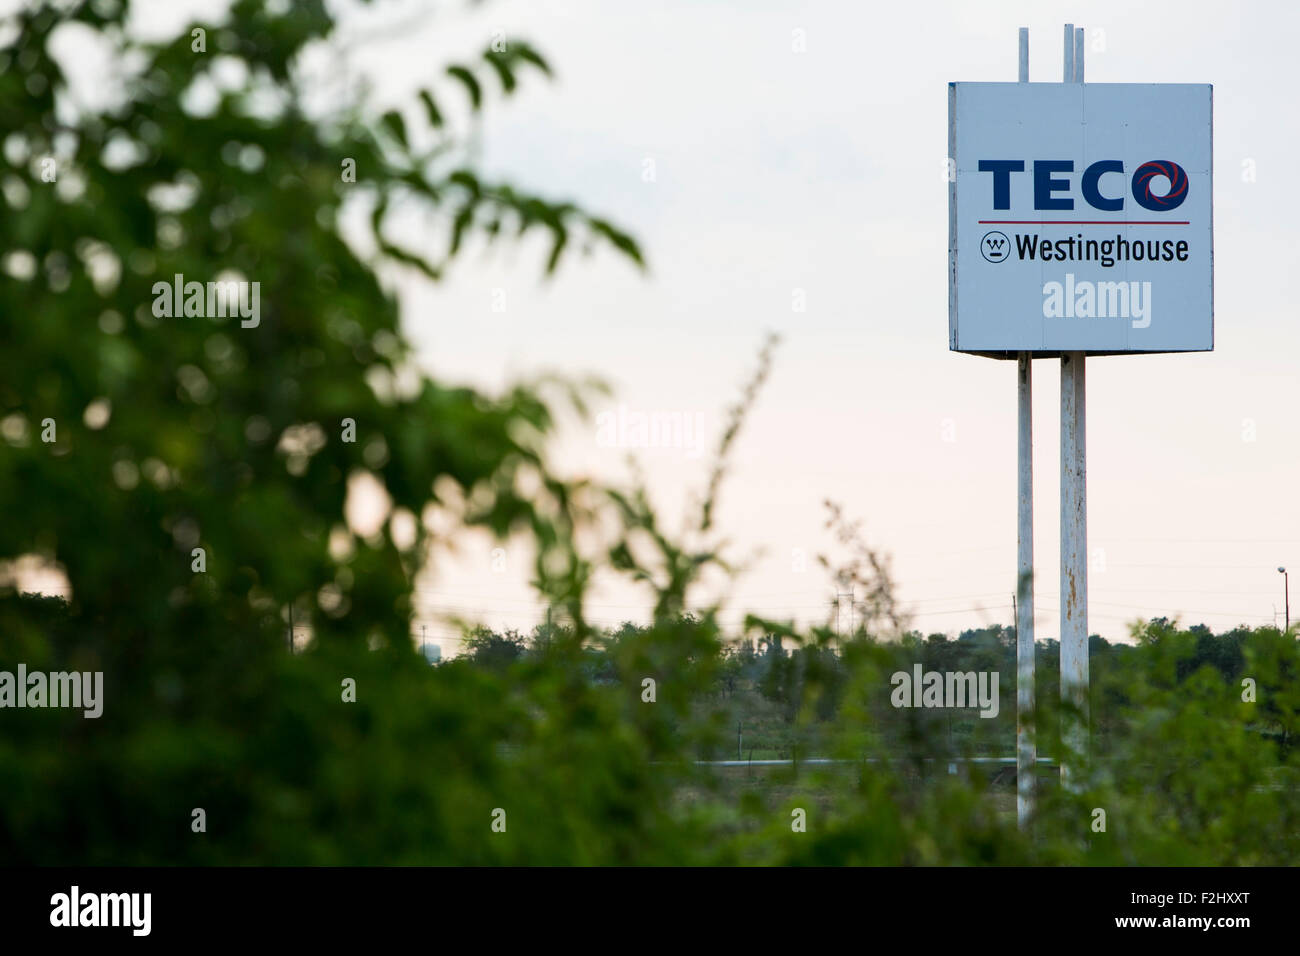 A logo sign outside of a facility occupied by the Teco Westinghouse Motor Company in Round Rock, Texas on September - Stock Image